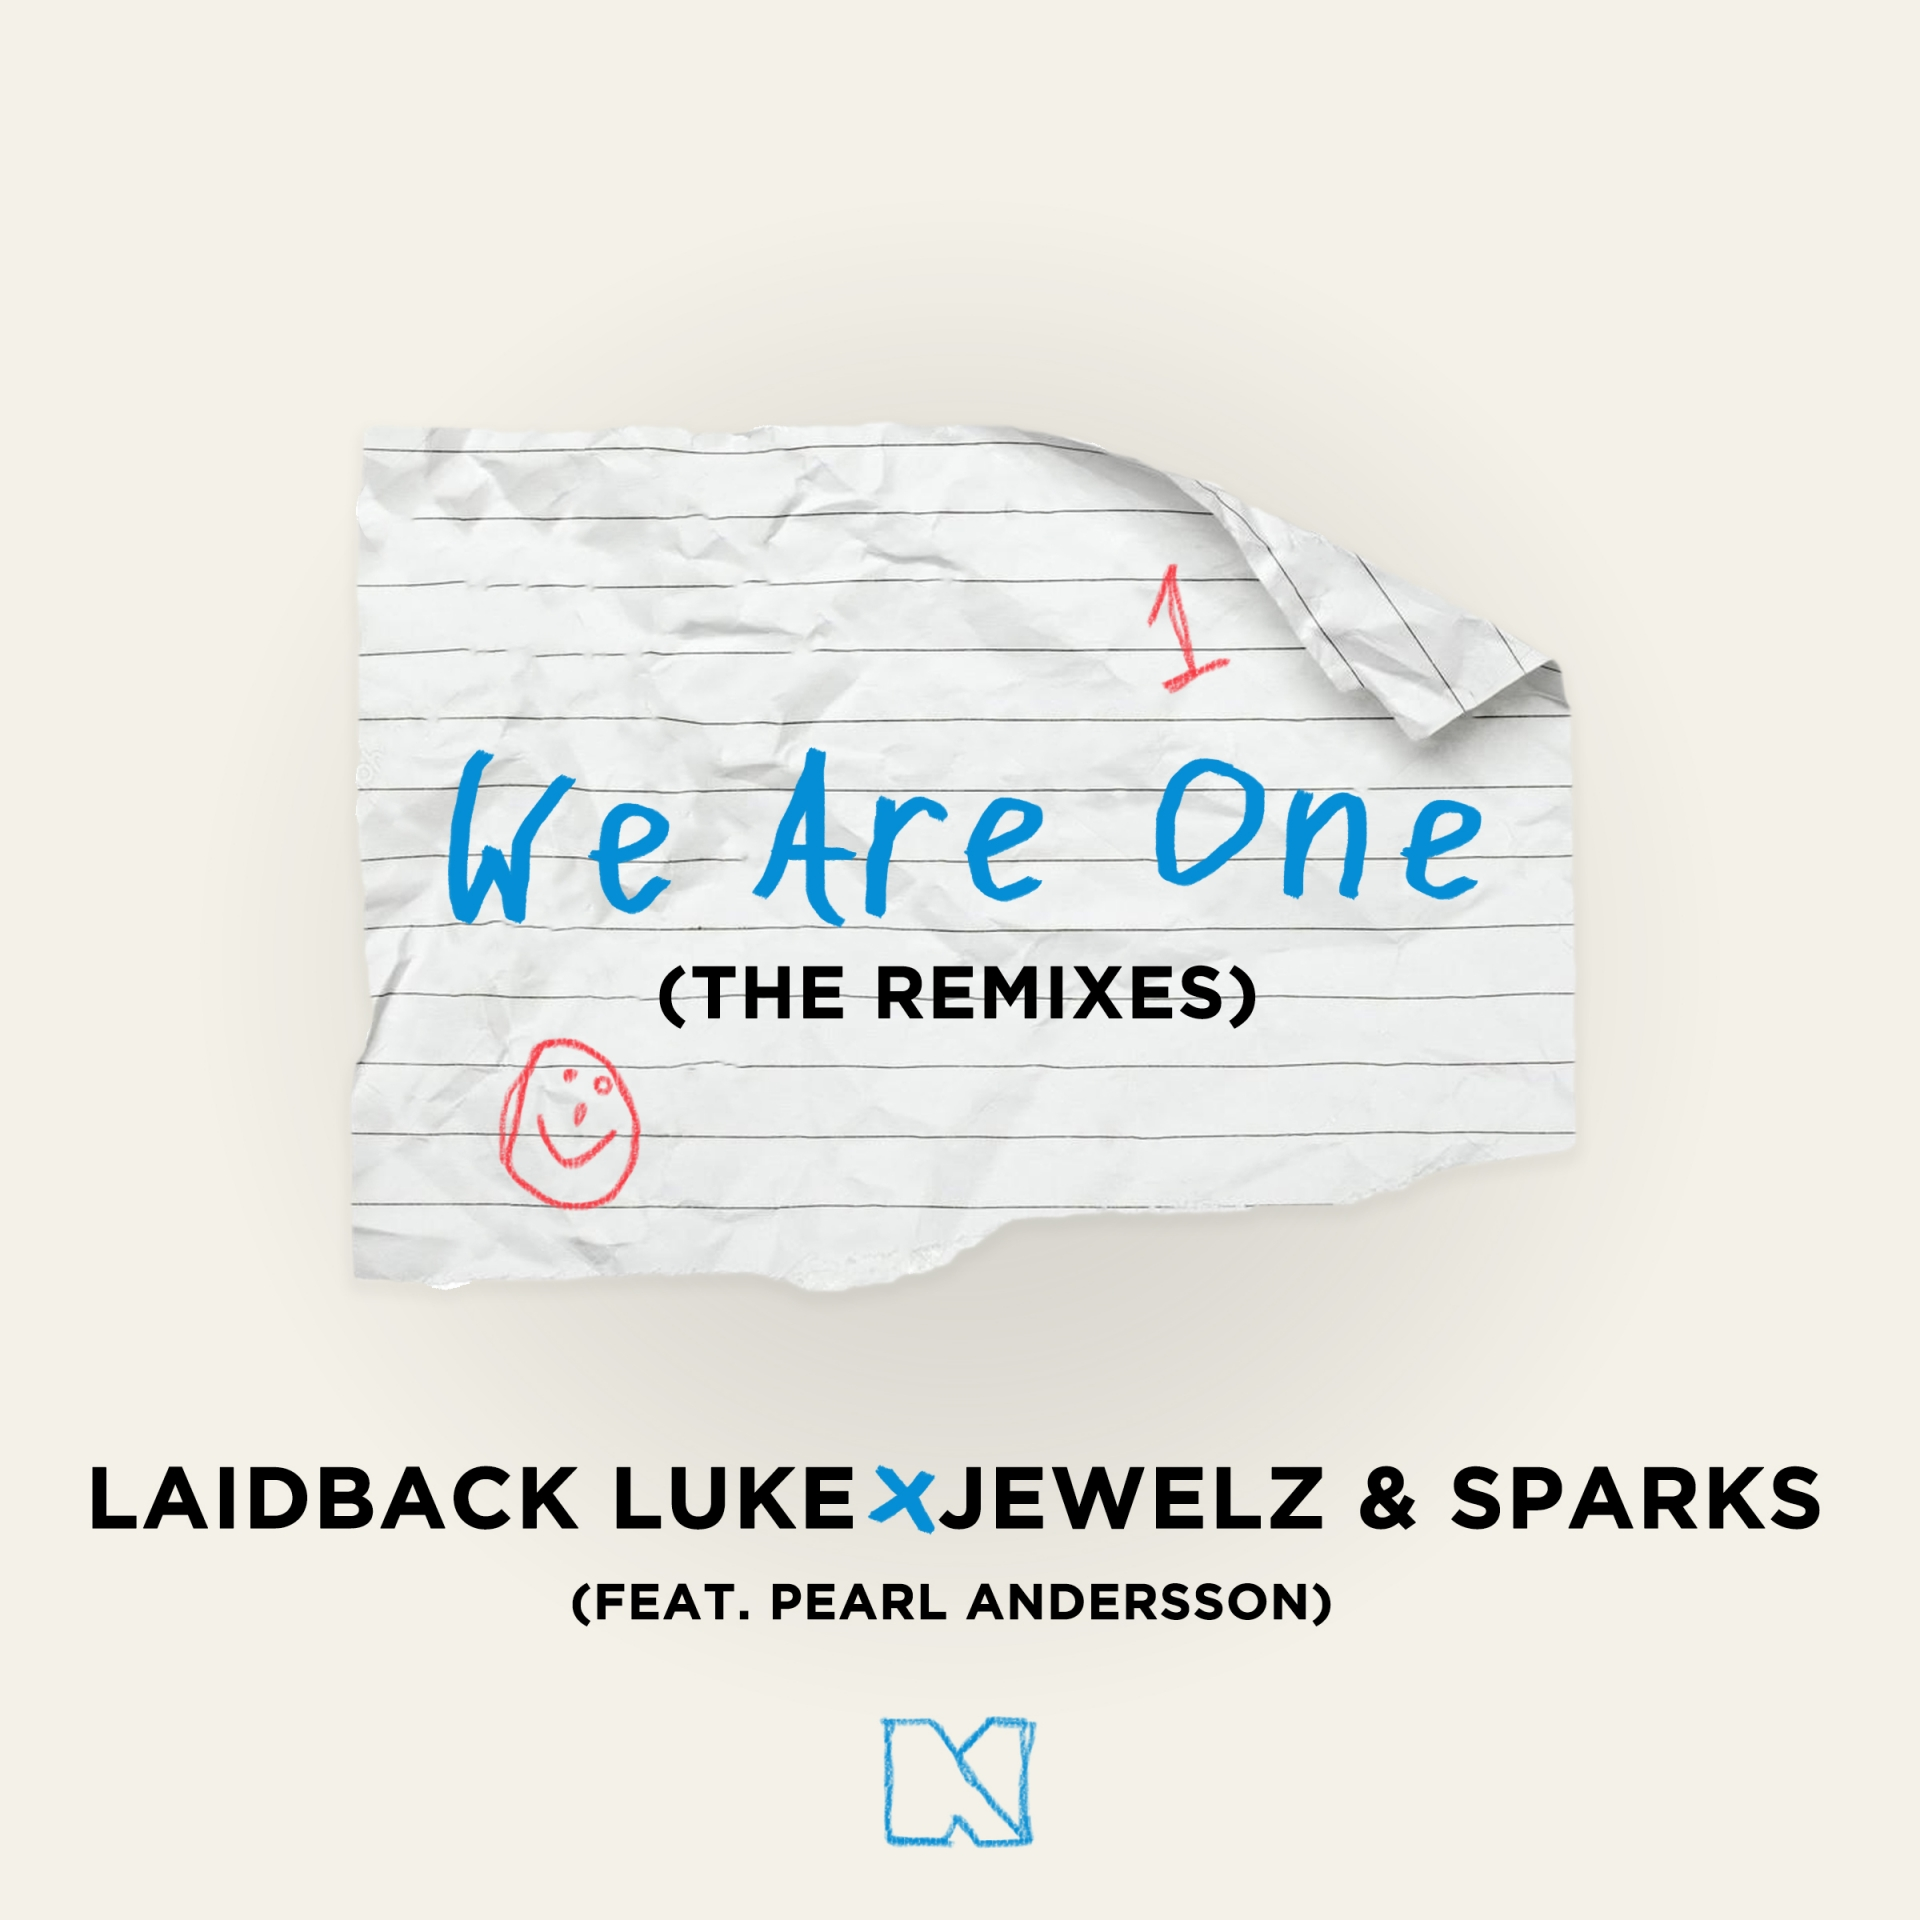 The 'We Are One' remixes are here!